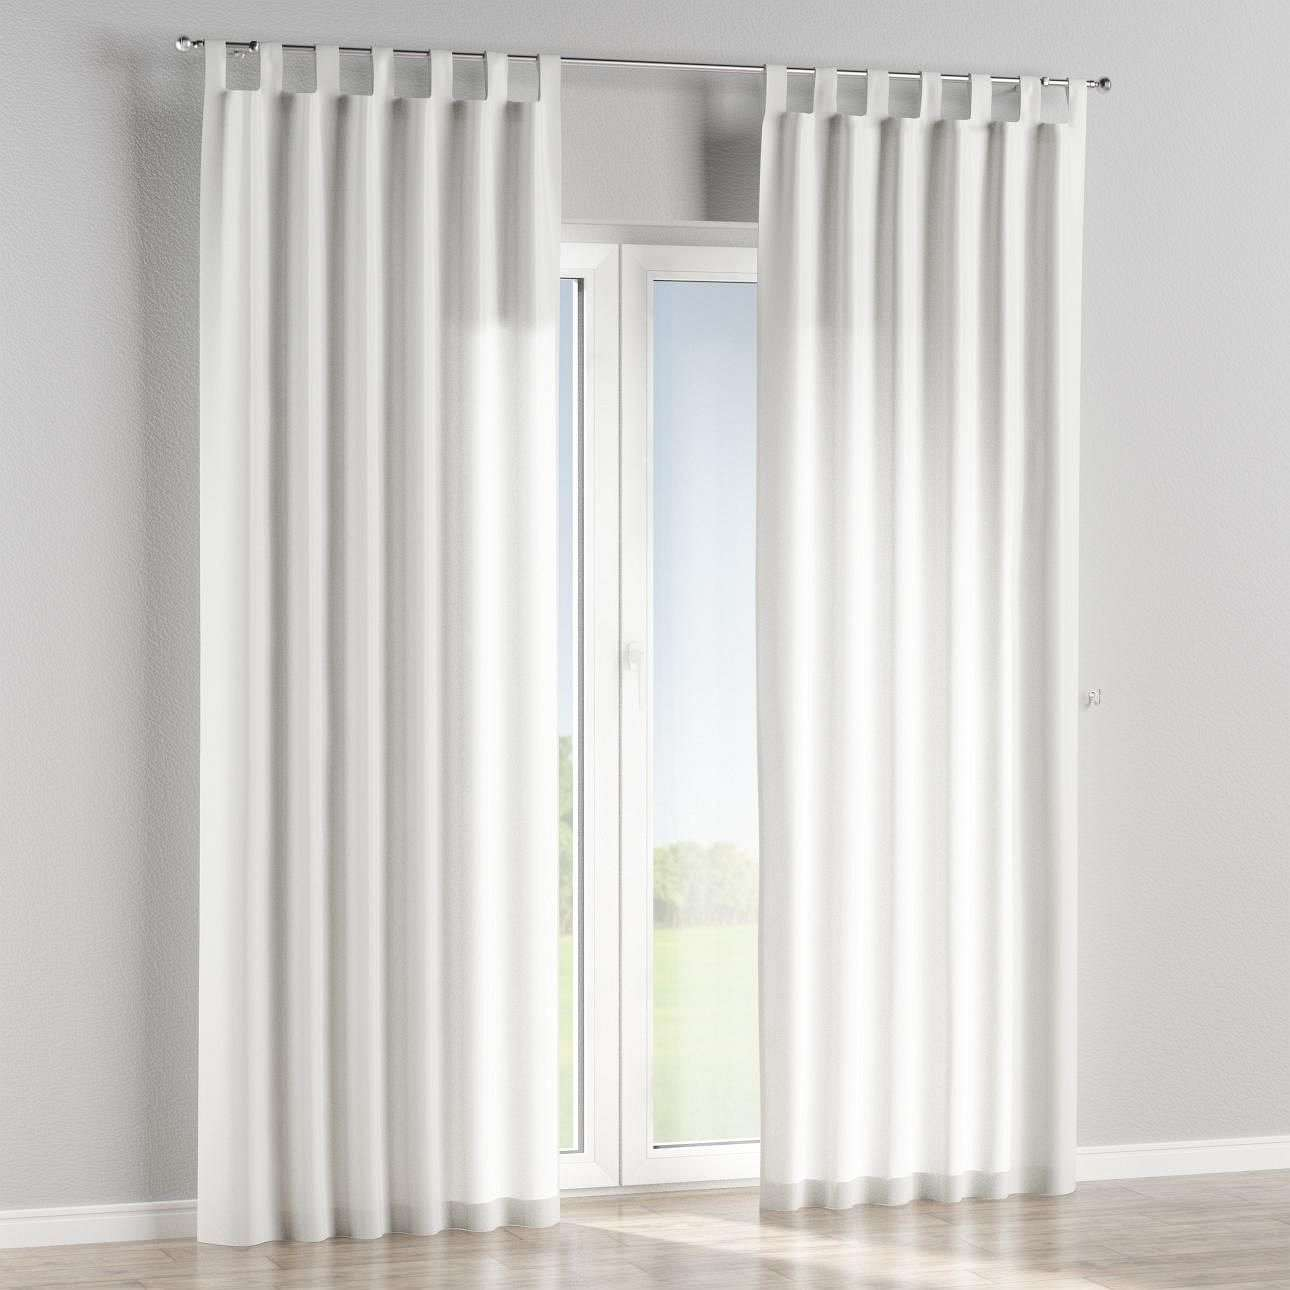 Tab top lined curtains in collection Marina, fabric: 140-62